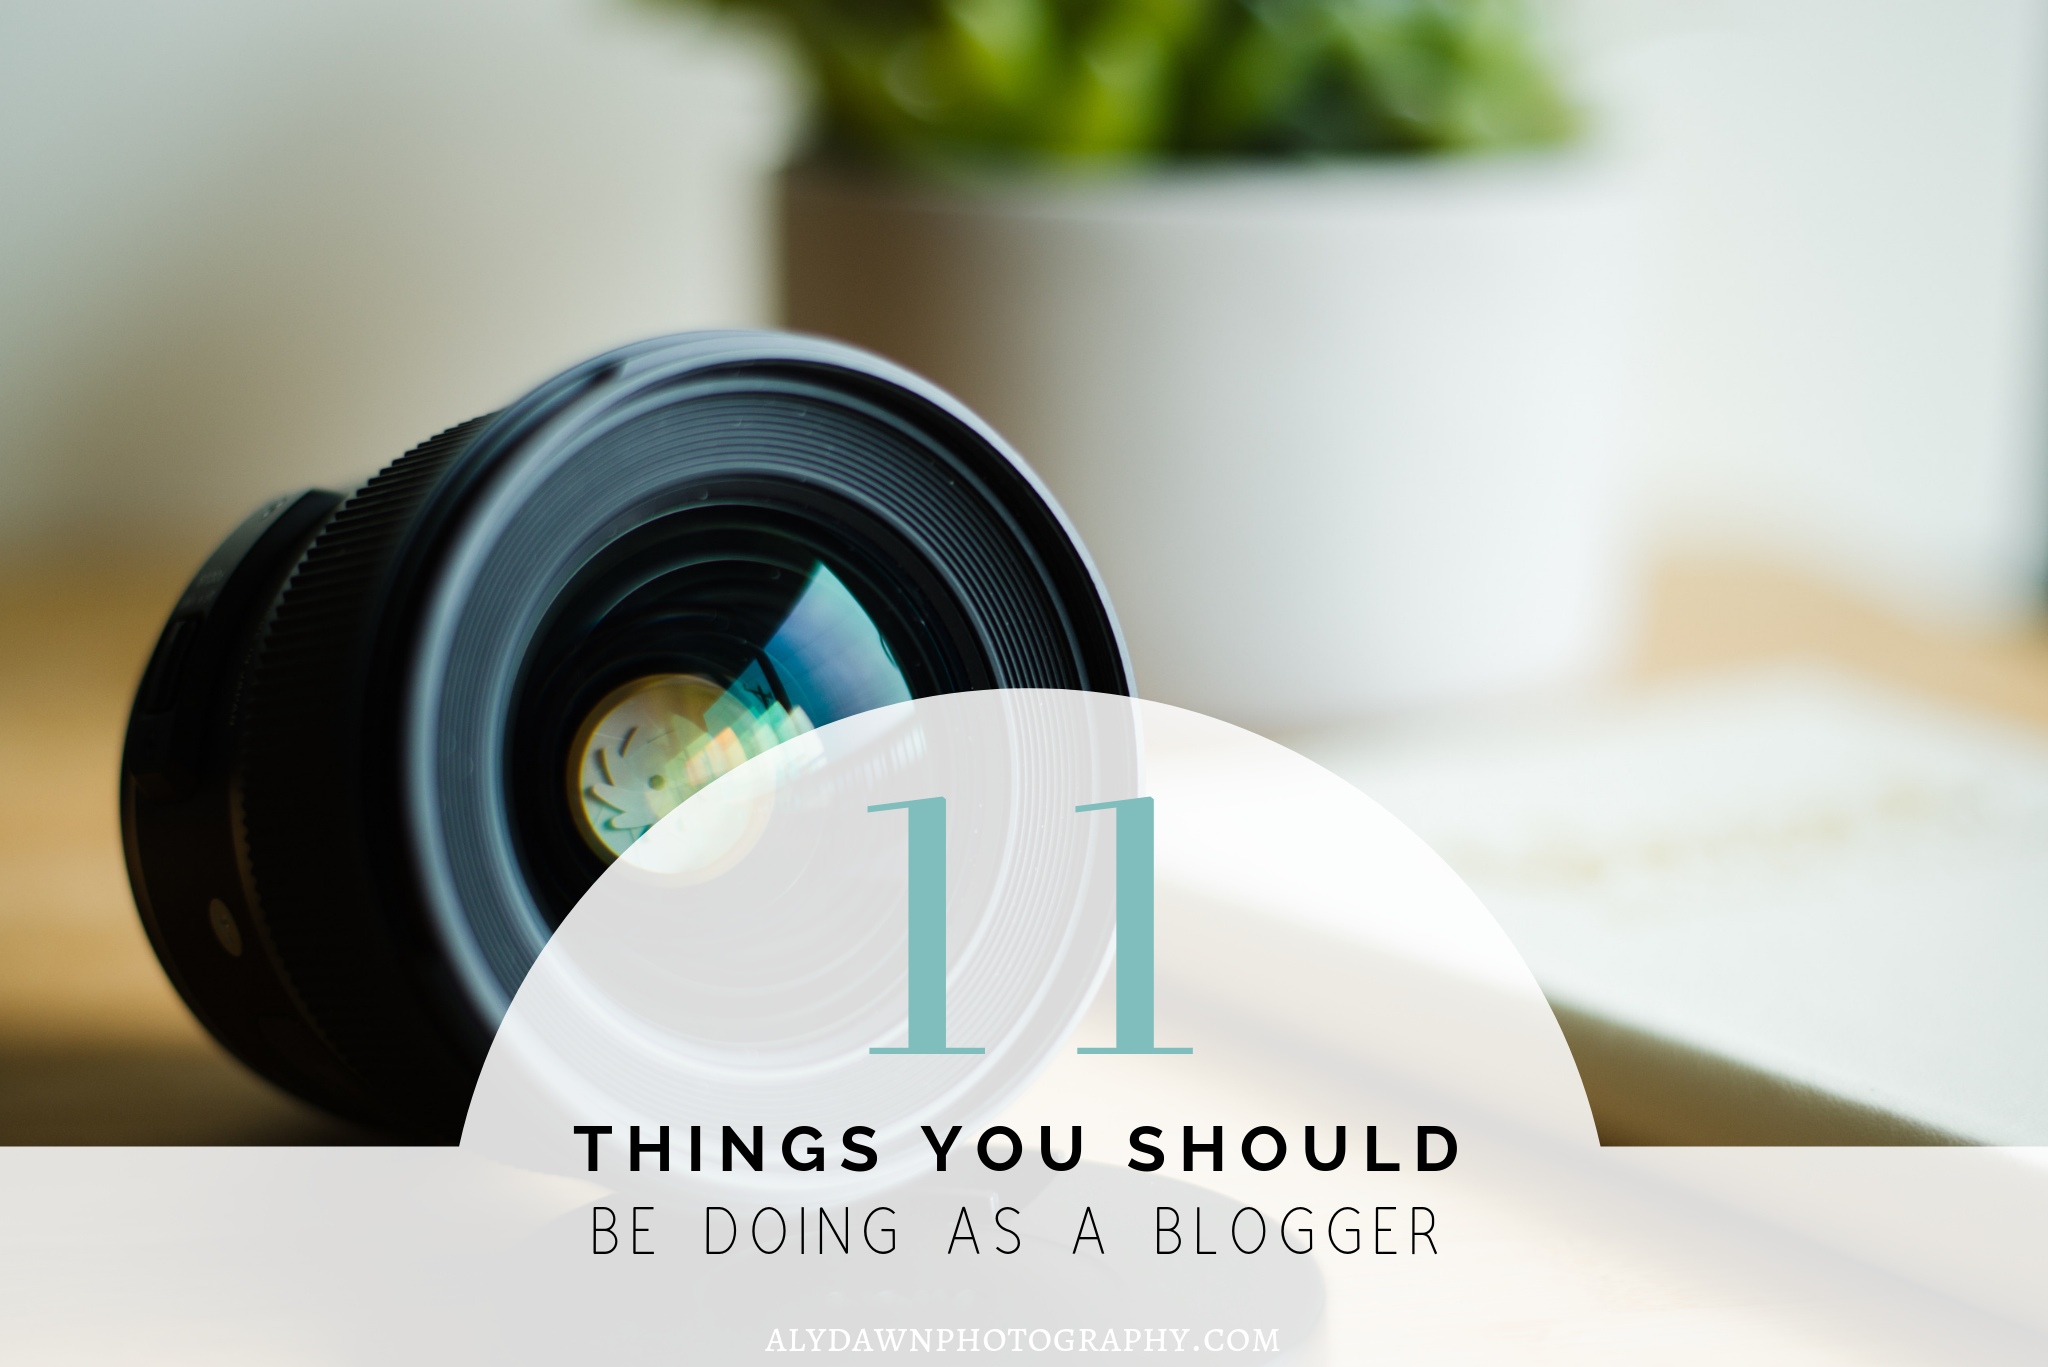 11 Things You Should Be Doing as a Blogger